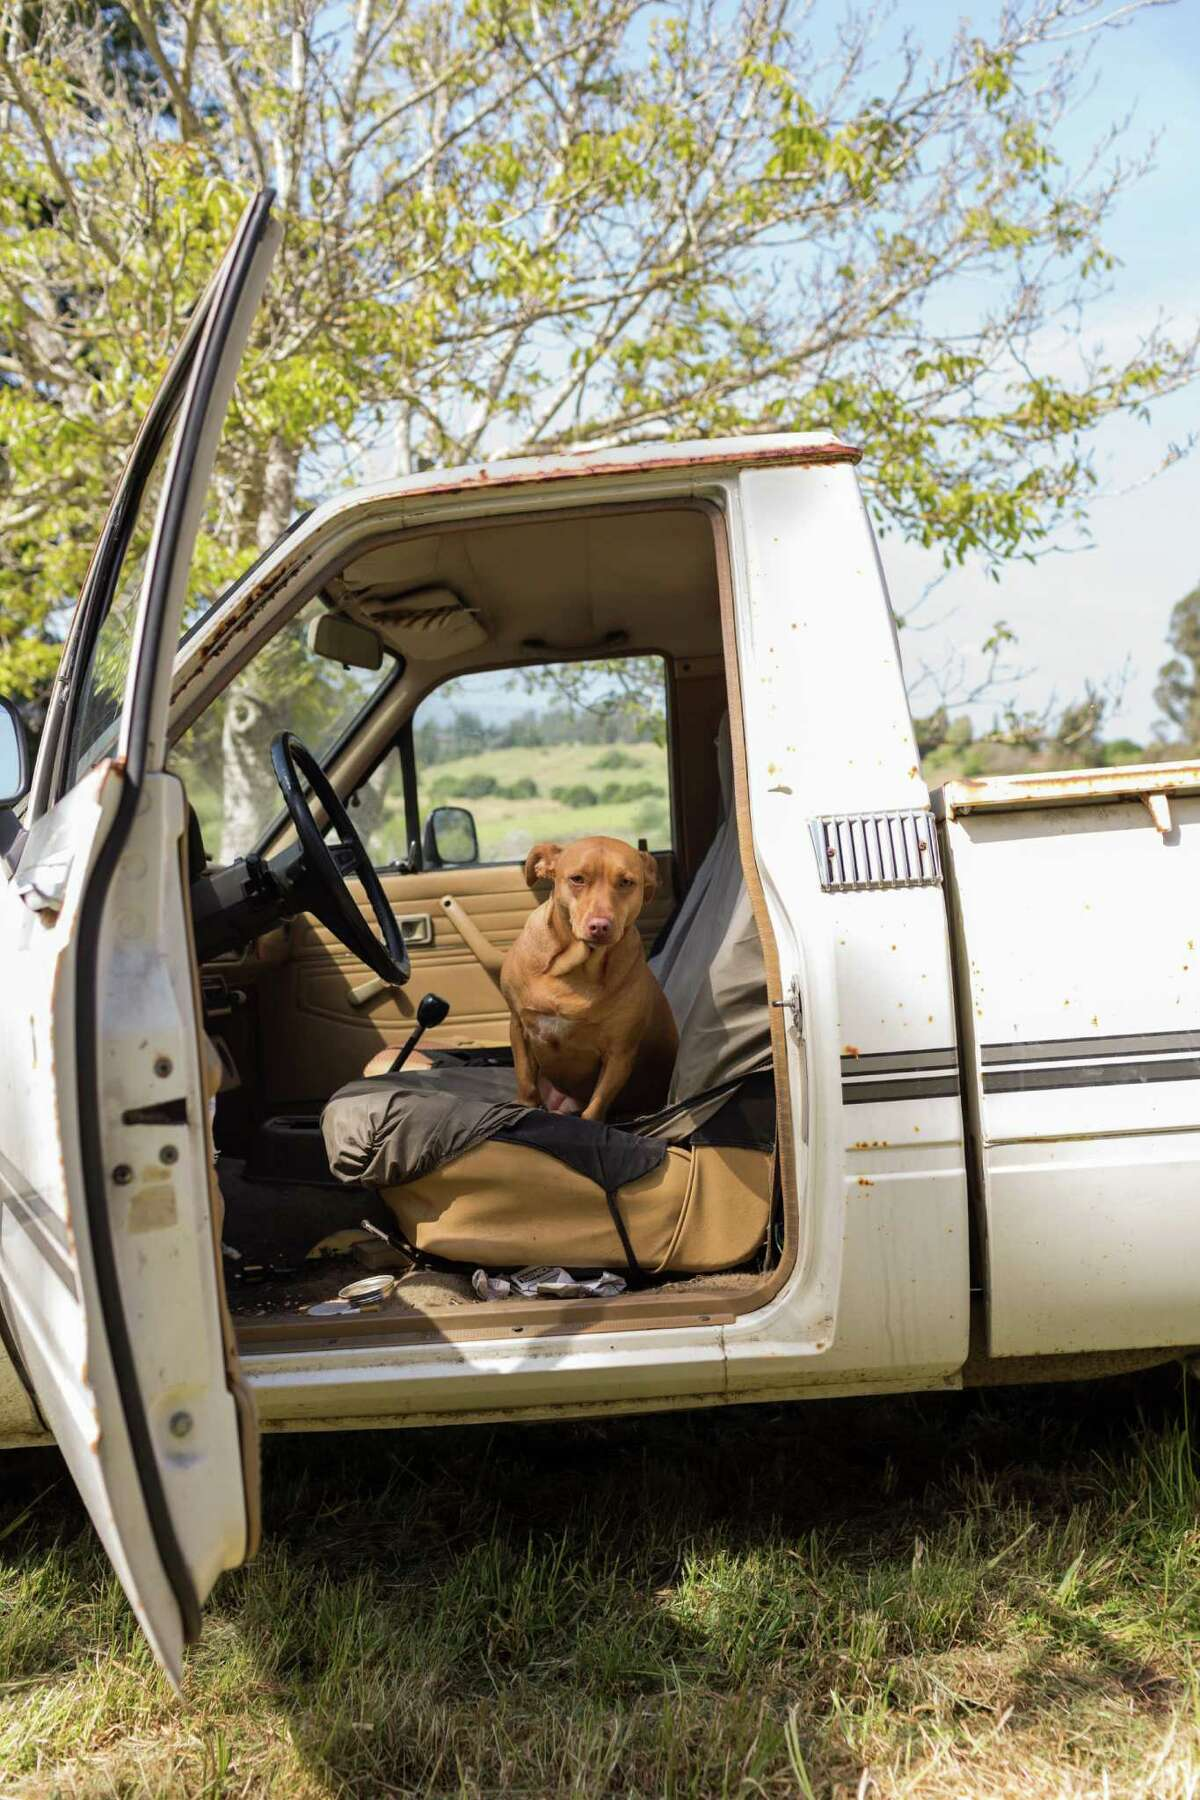 Ventana Surfboards production facility is a tiny shack at the top of a hill surrounded by grassy fields in Larkin Valley, Calif., Monday, April 13, 2015. Here one of Martjin Stiphout's dogs, Coho, in the driver;s seat of his truck.